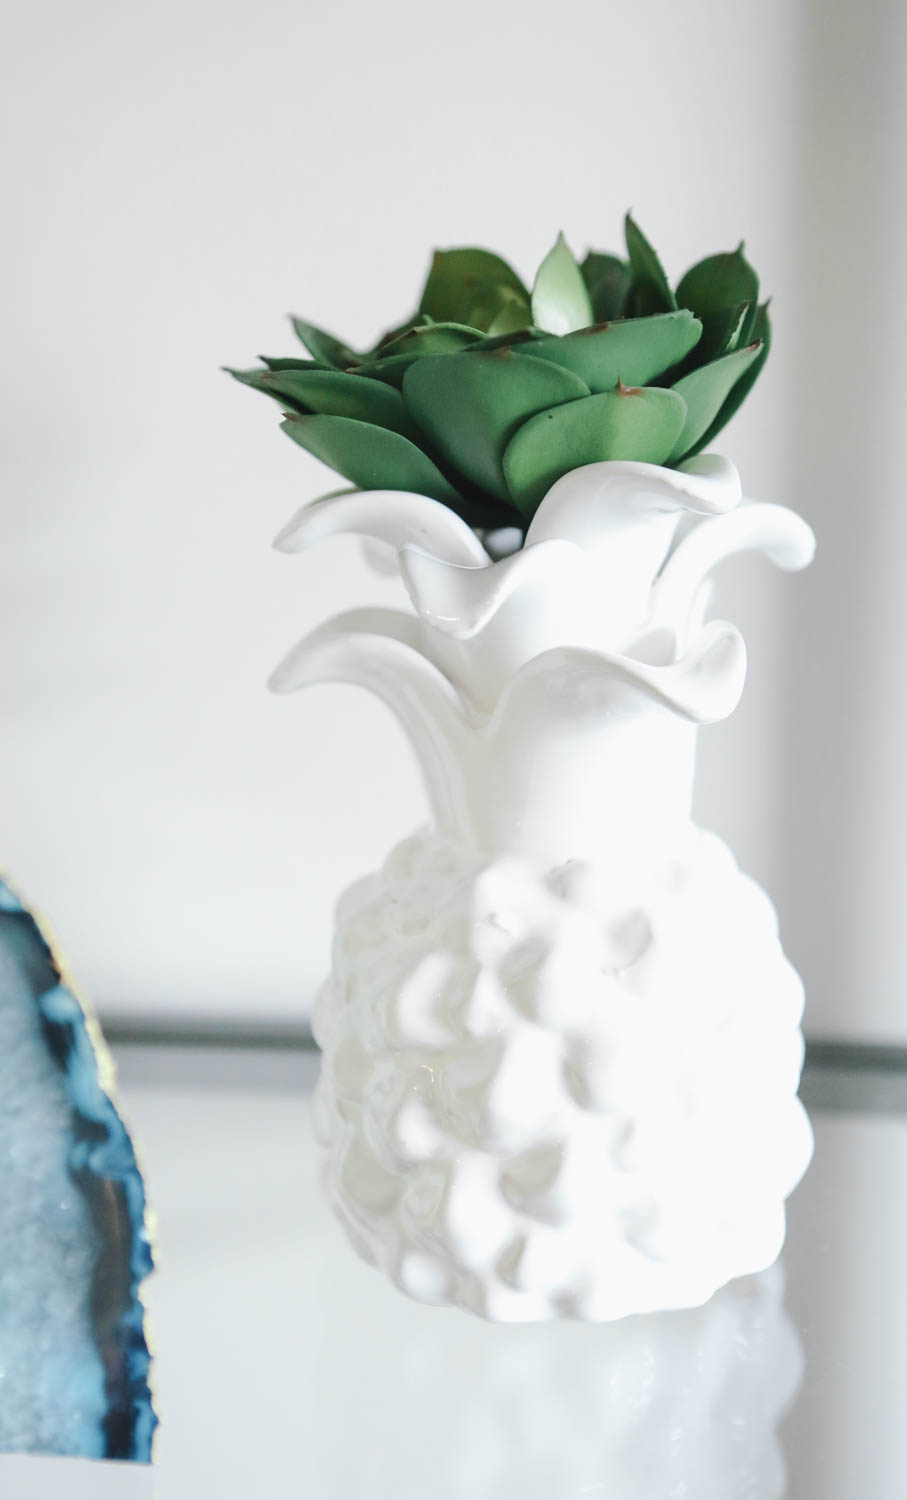 I popped a little faux  succulent  on top of this  pineapple vase  to complete the pineapple look. Cort keeps making fun of me for my current pineapple obsession. He's like seriously, another pineapple. But I love them!